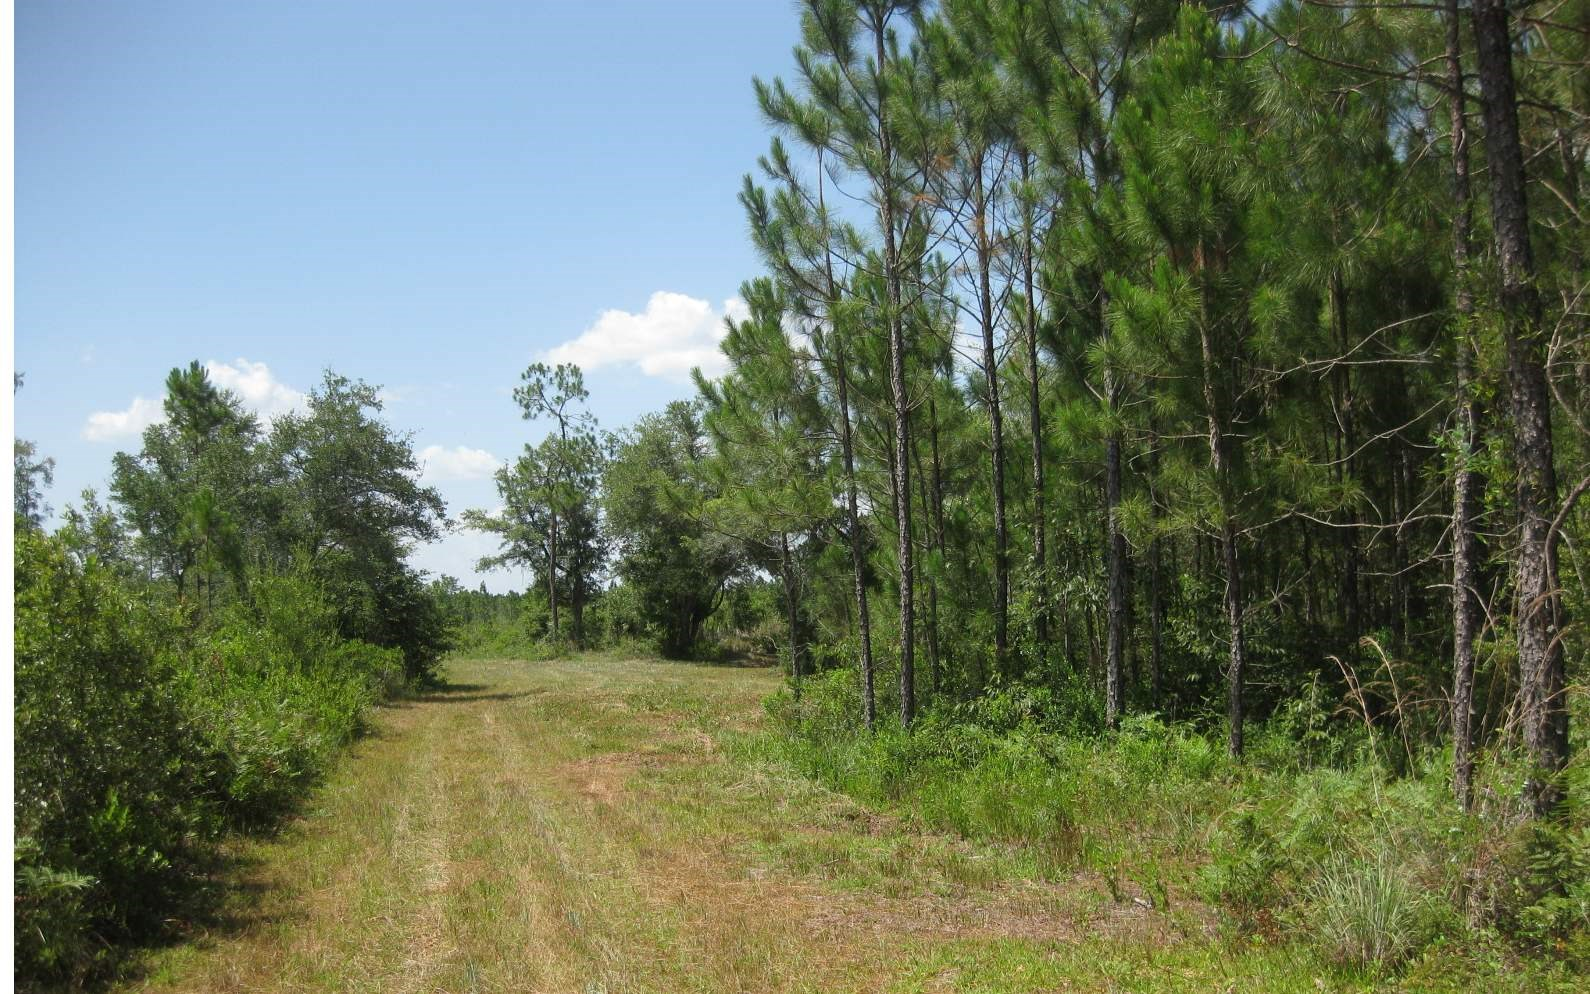 140 Acres of Natural North Florida Land For Sale